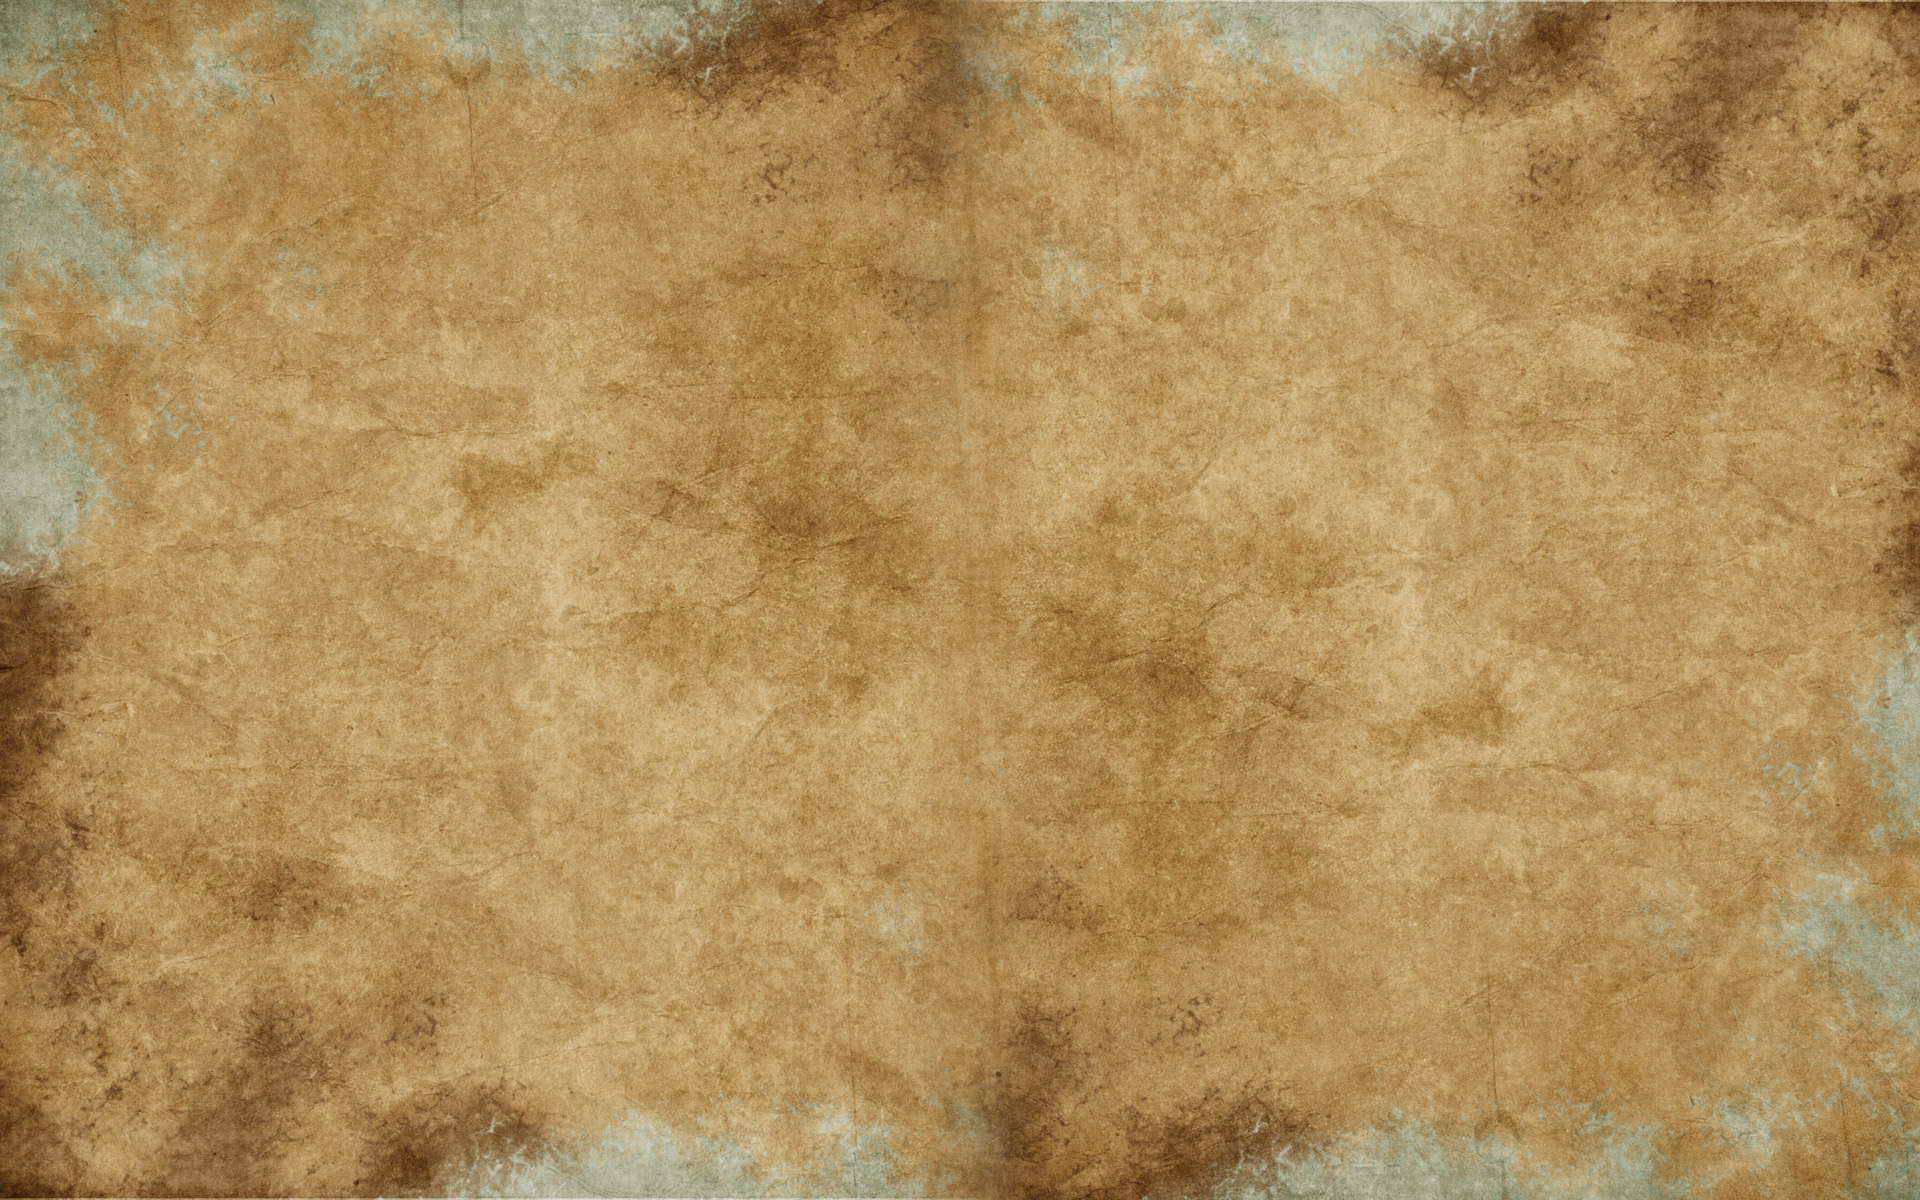 blue_brown_background_2